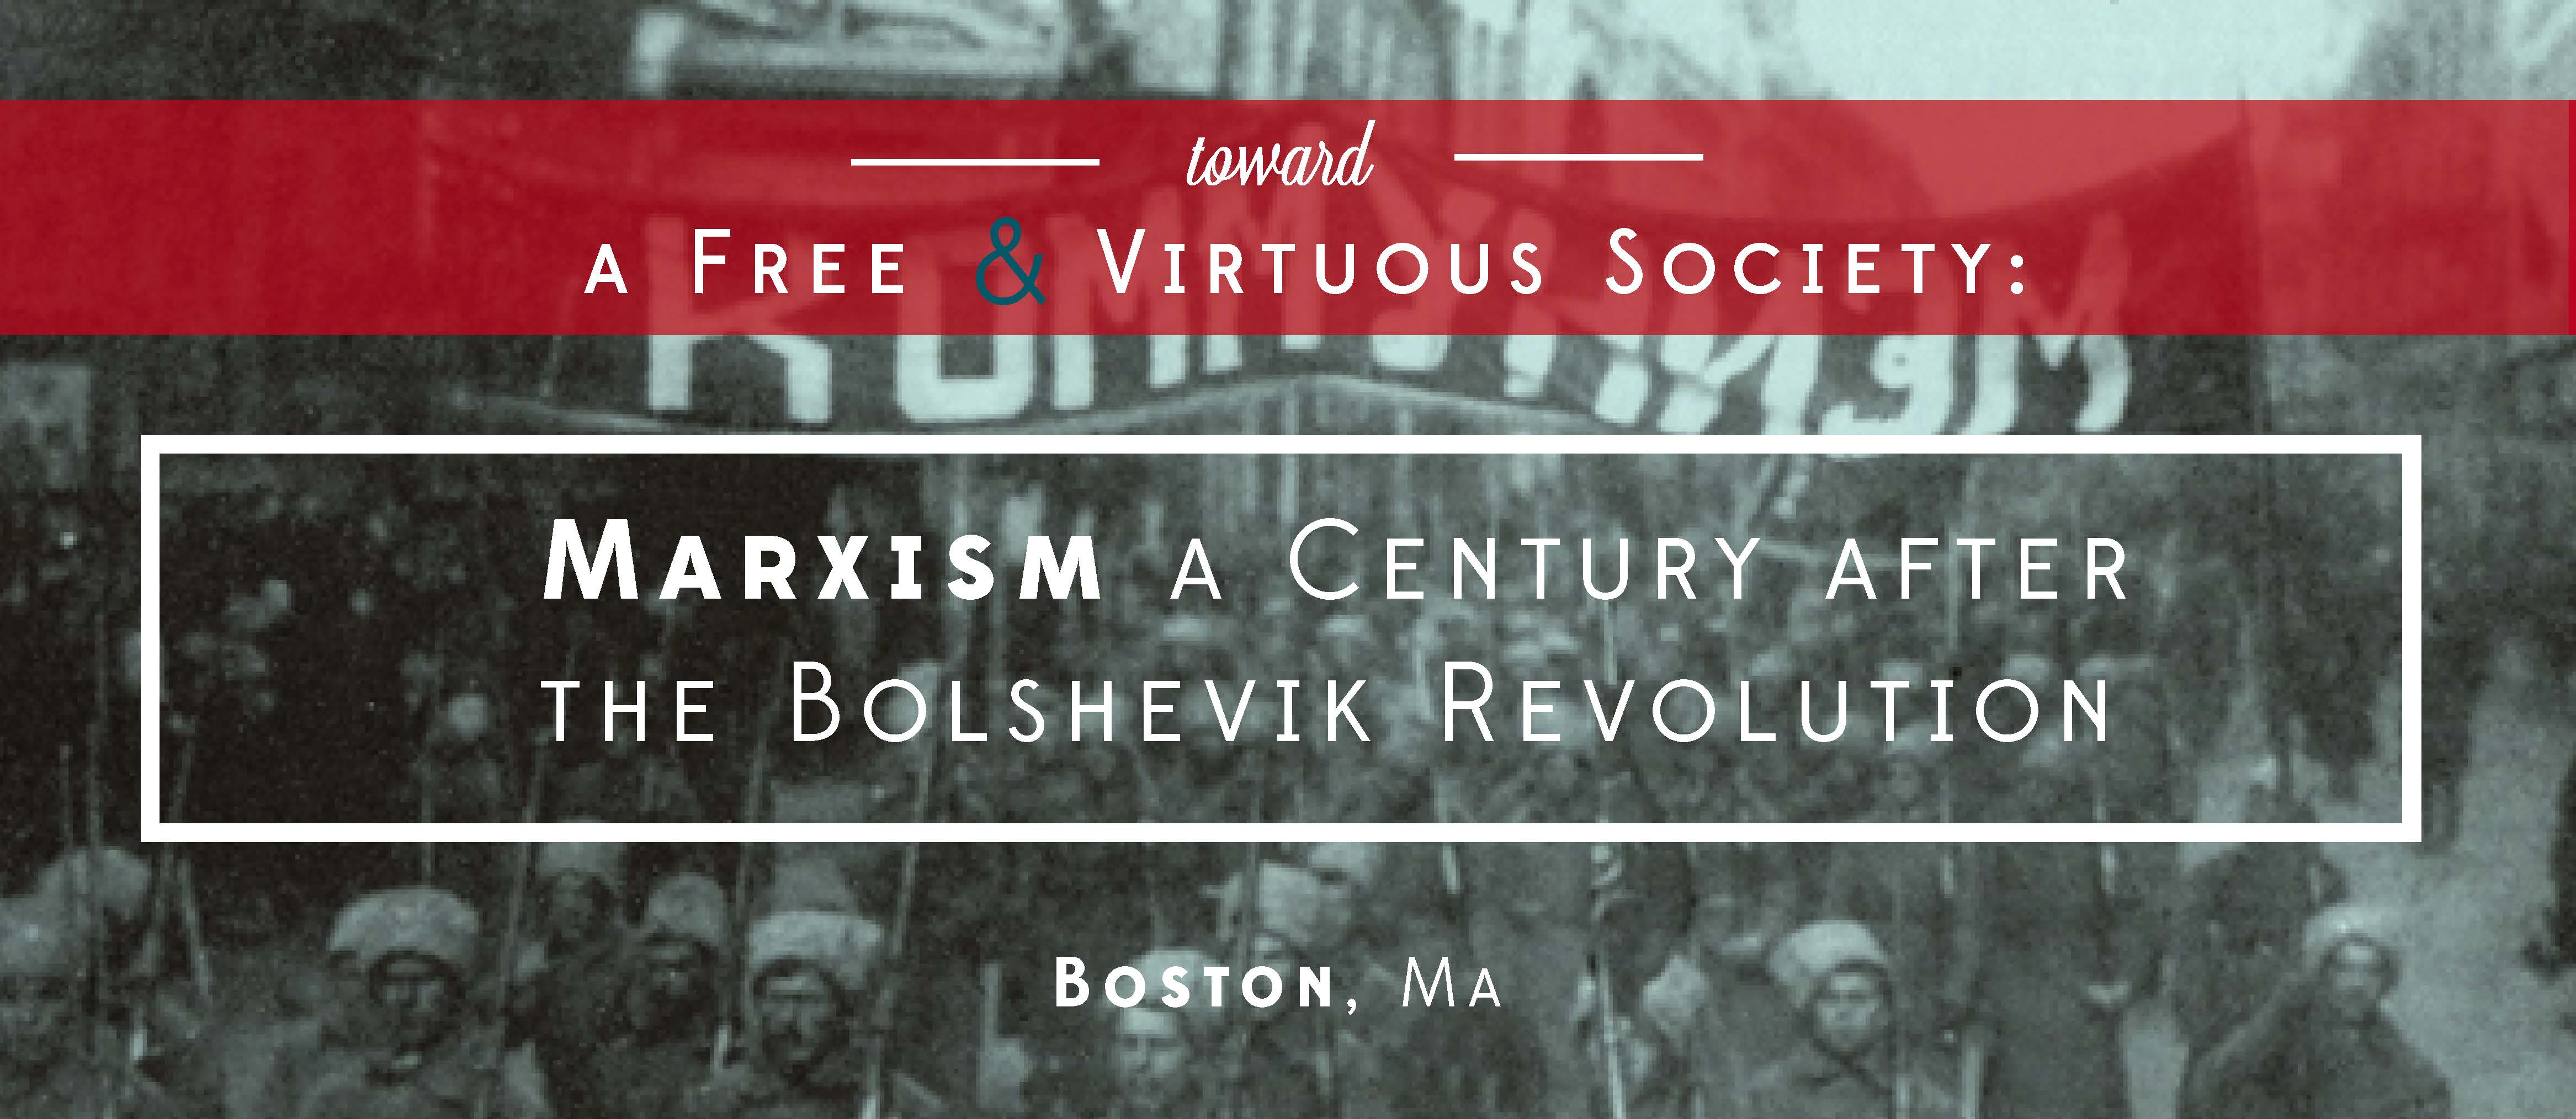 Toward a Free and Virtuous Society:  Marxism a Century after the Bolshevik Revolution